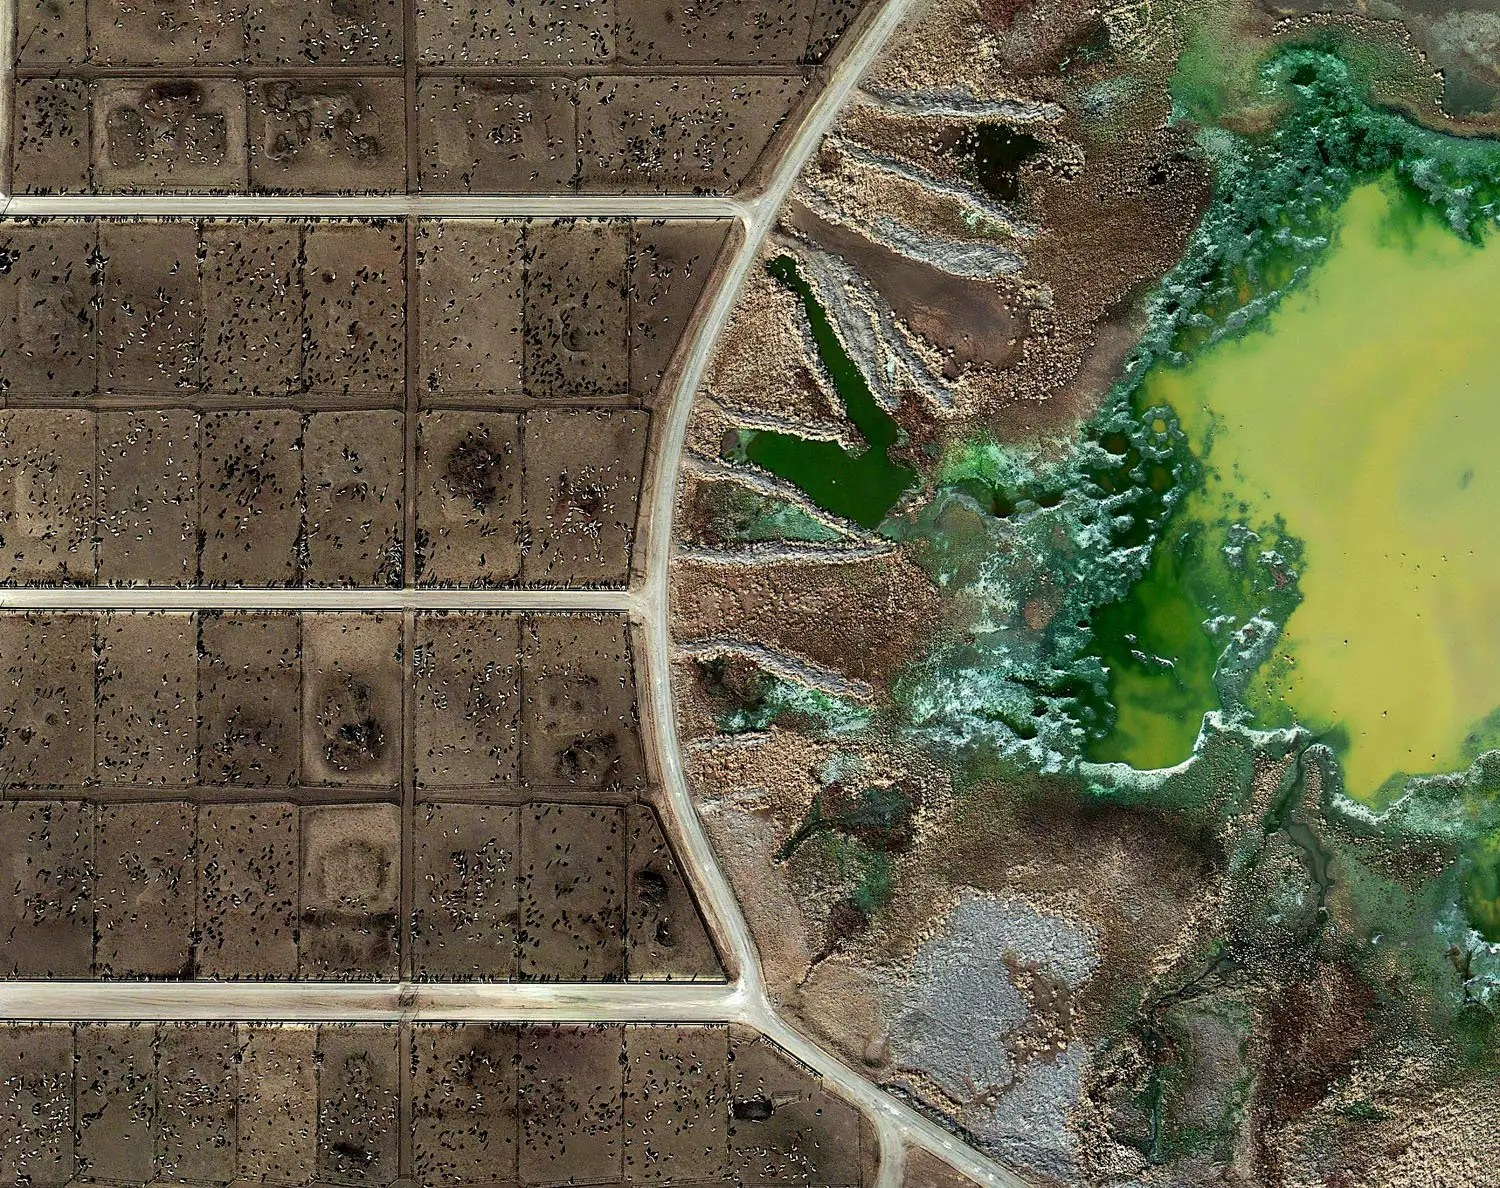 British artist Mishka Henner captured the effects of industrial farming on the American countryside. Here you can see the chemical byproducts from the feedlots at an industrial farm. He exhibited these photos in September.